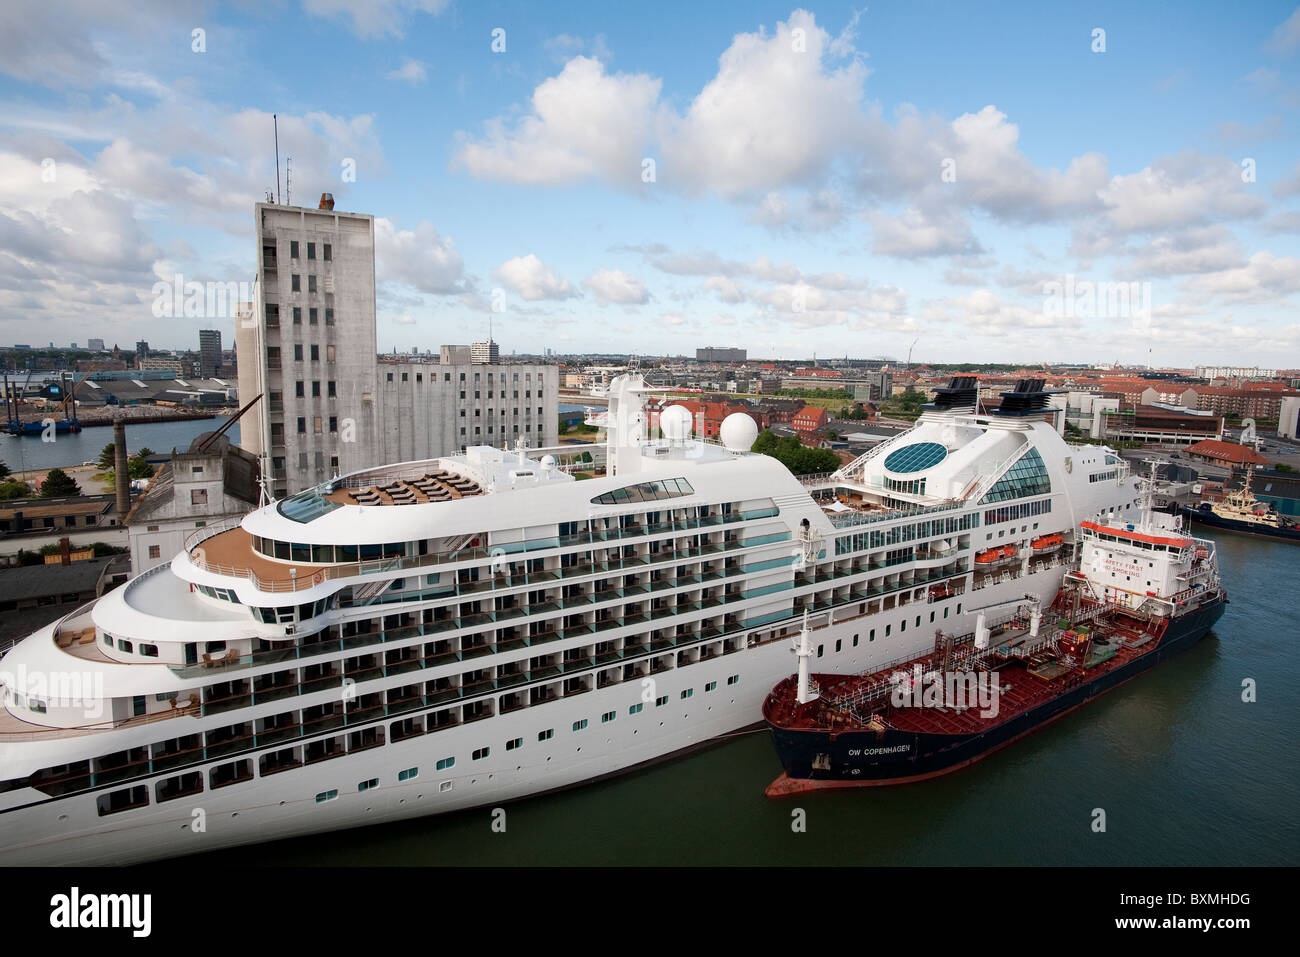 Cruise Ships And A Bunker Boat In Copenhagen Denmark Stock Photo Royalty Free Image 33644172 ...